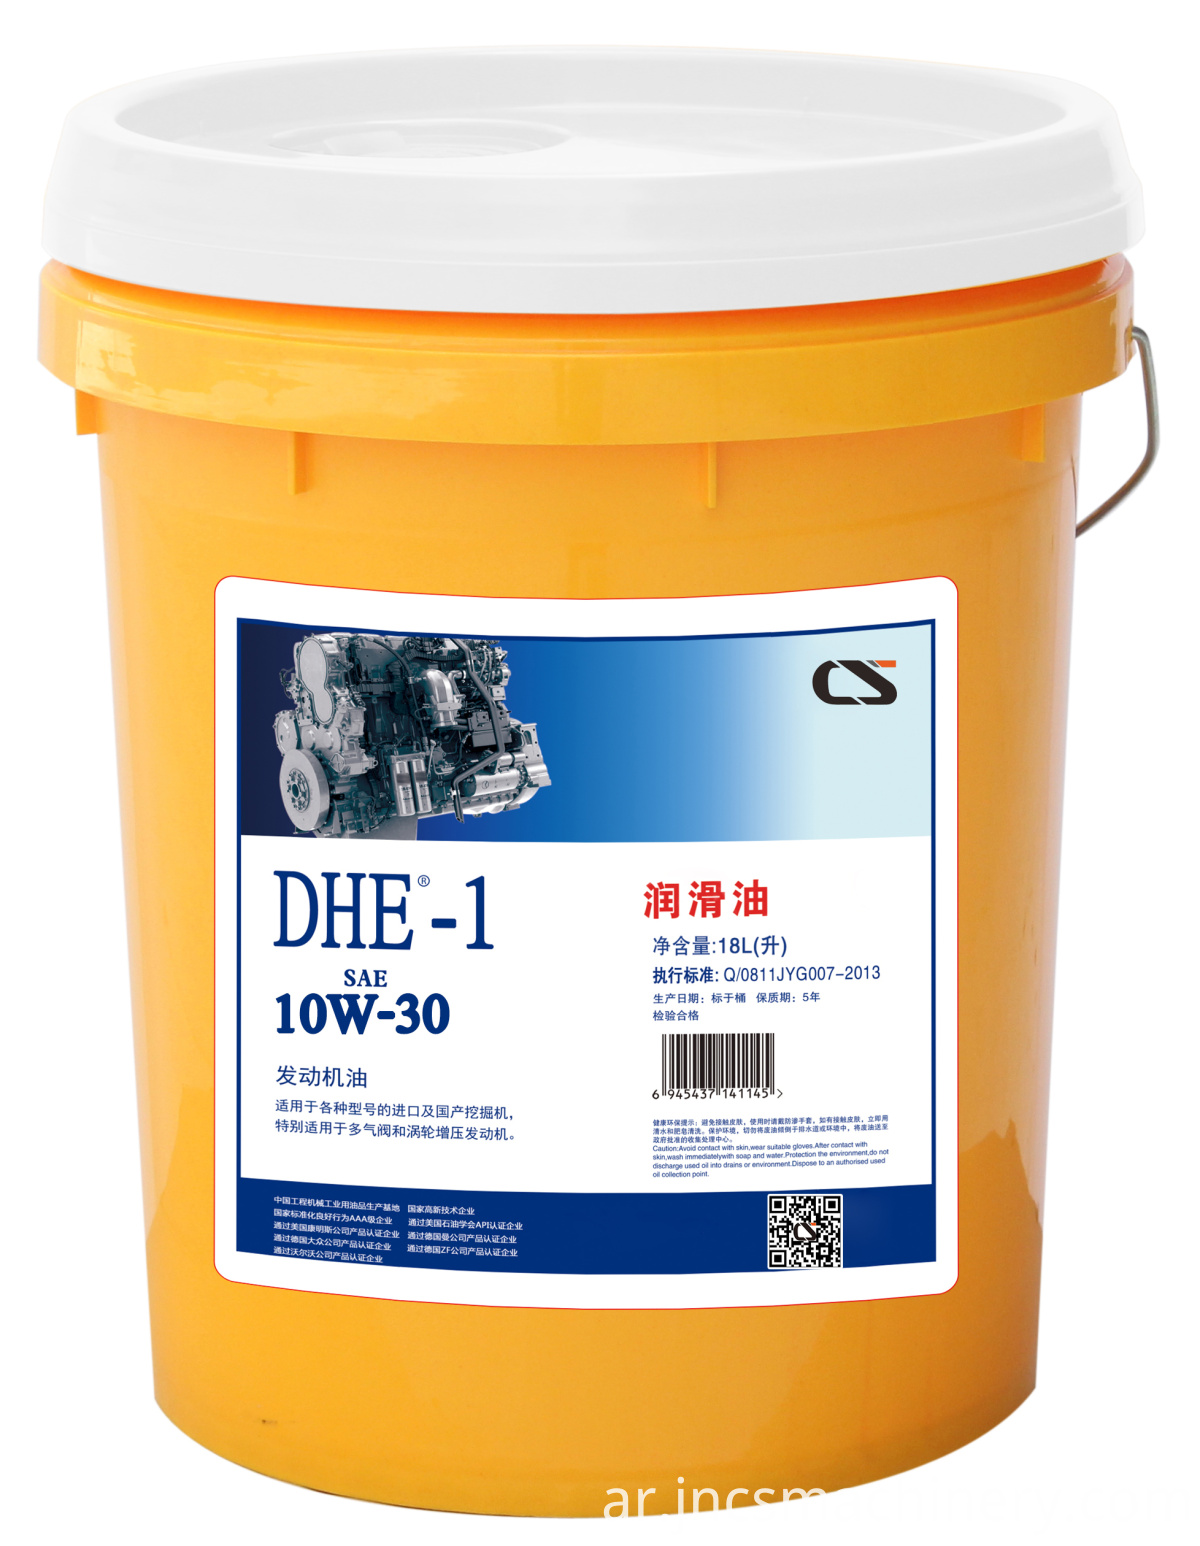 engine oil SAE 10W-30